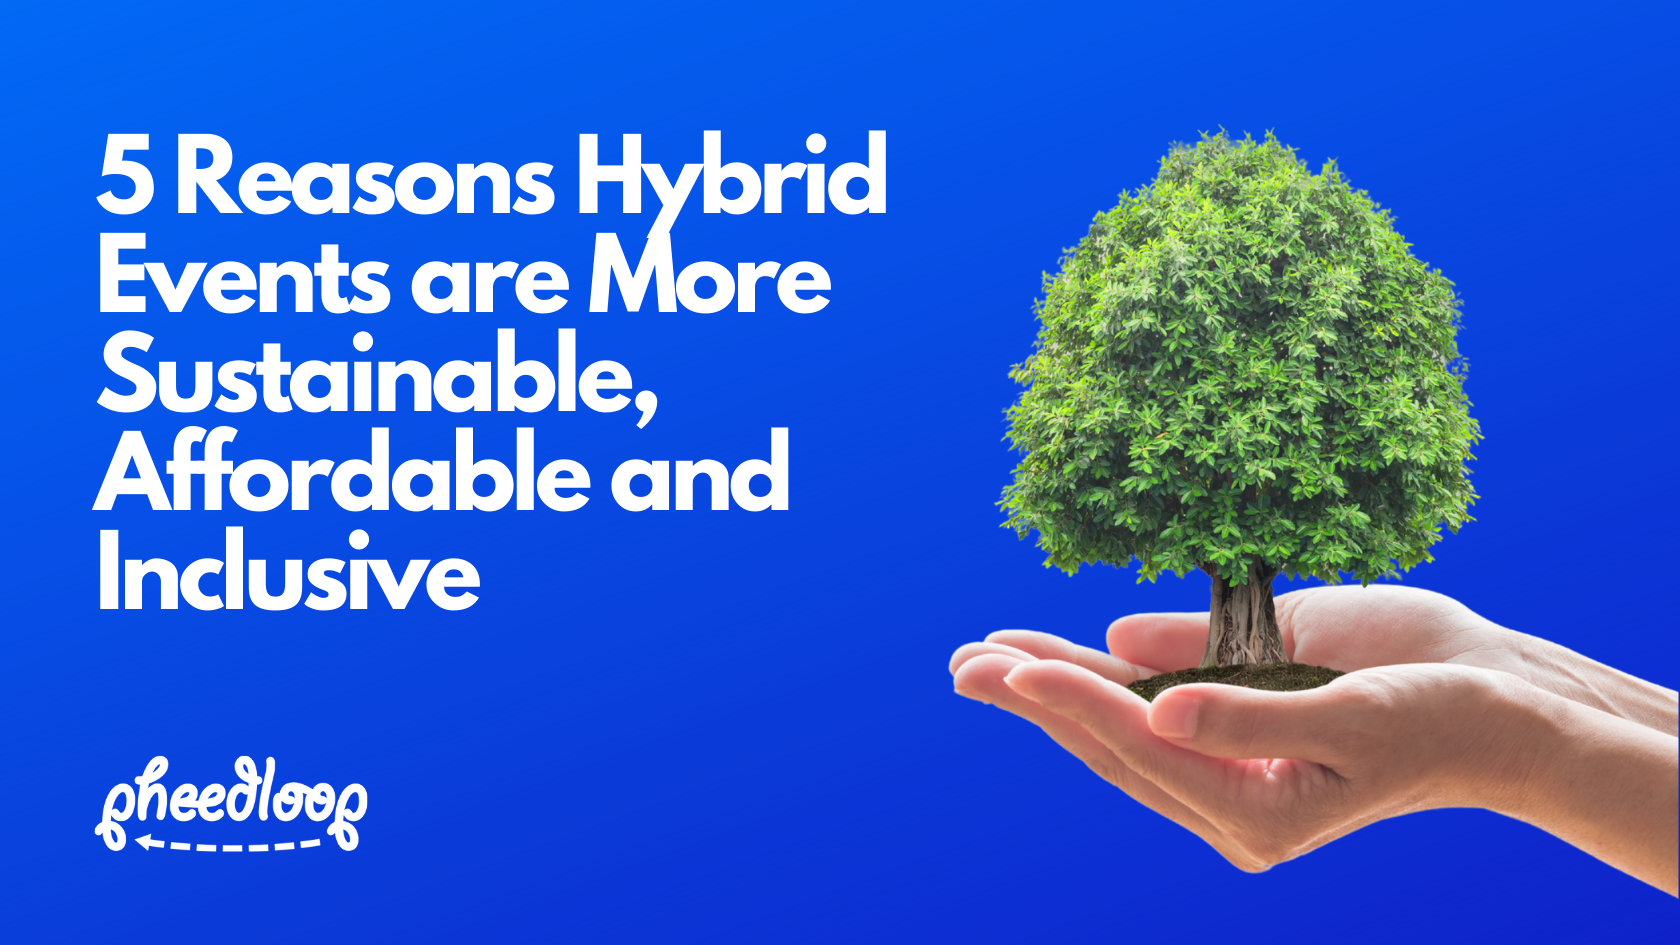 5 Reasons Hybrid Events are More Sustainable, Affordable and Inclusive